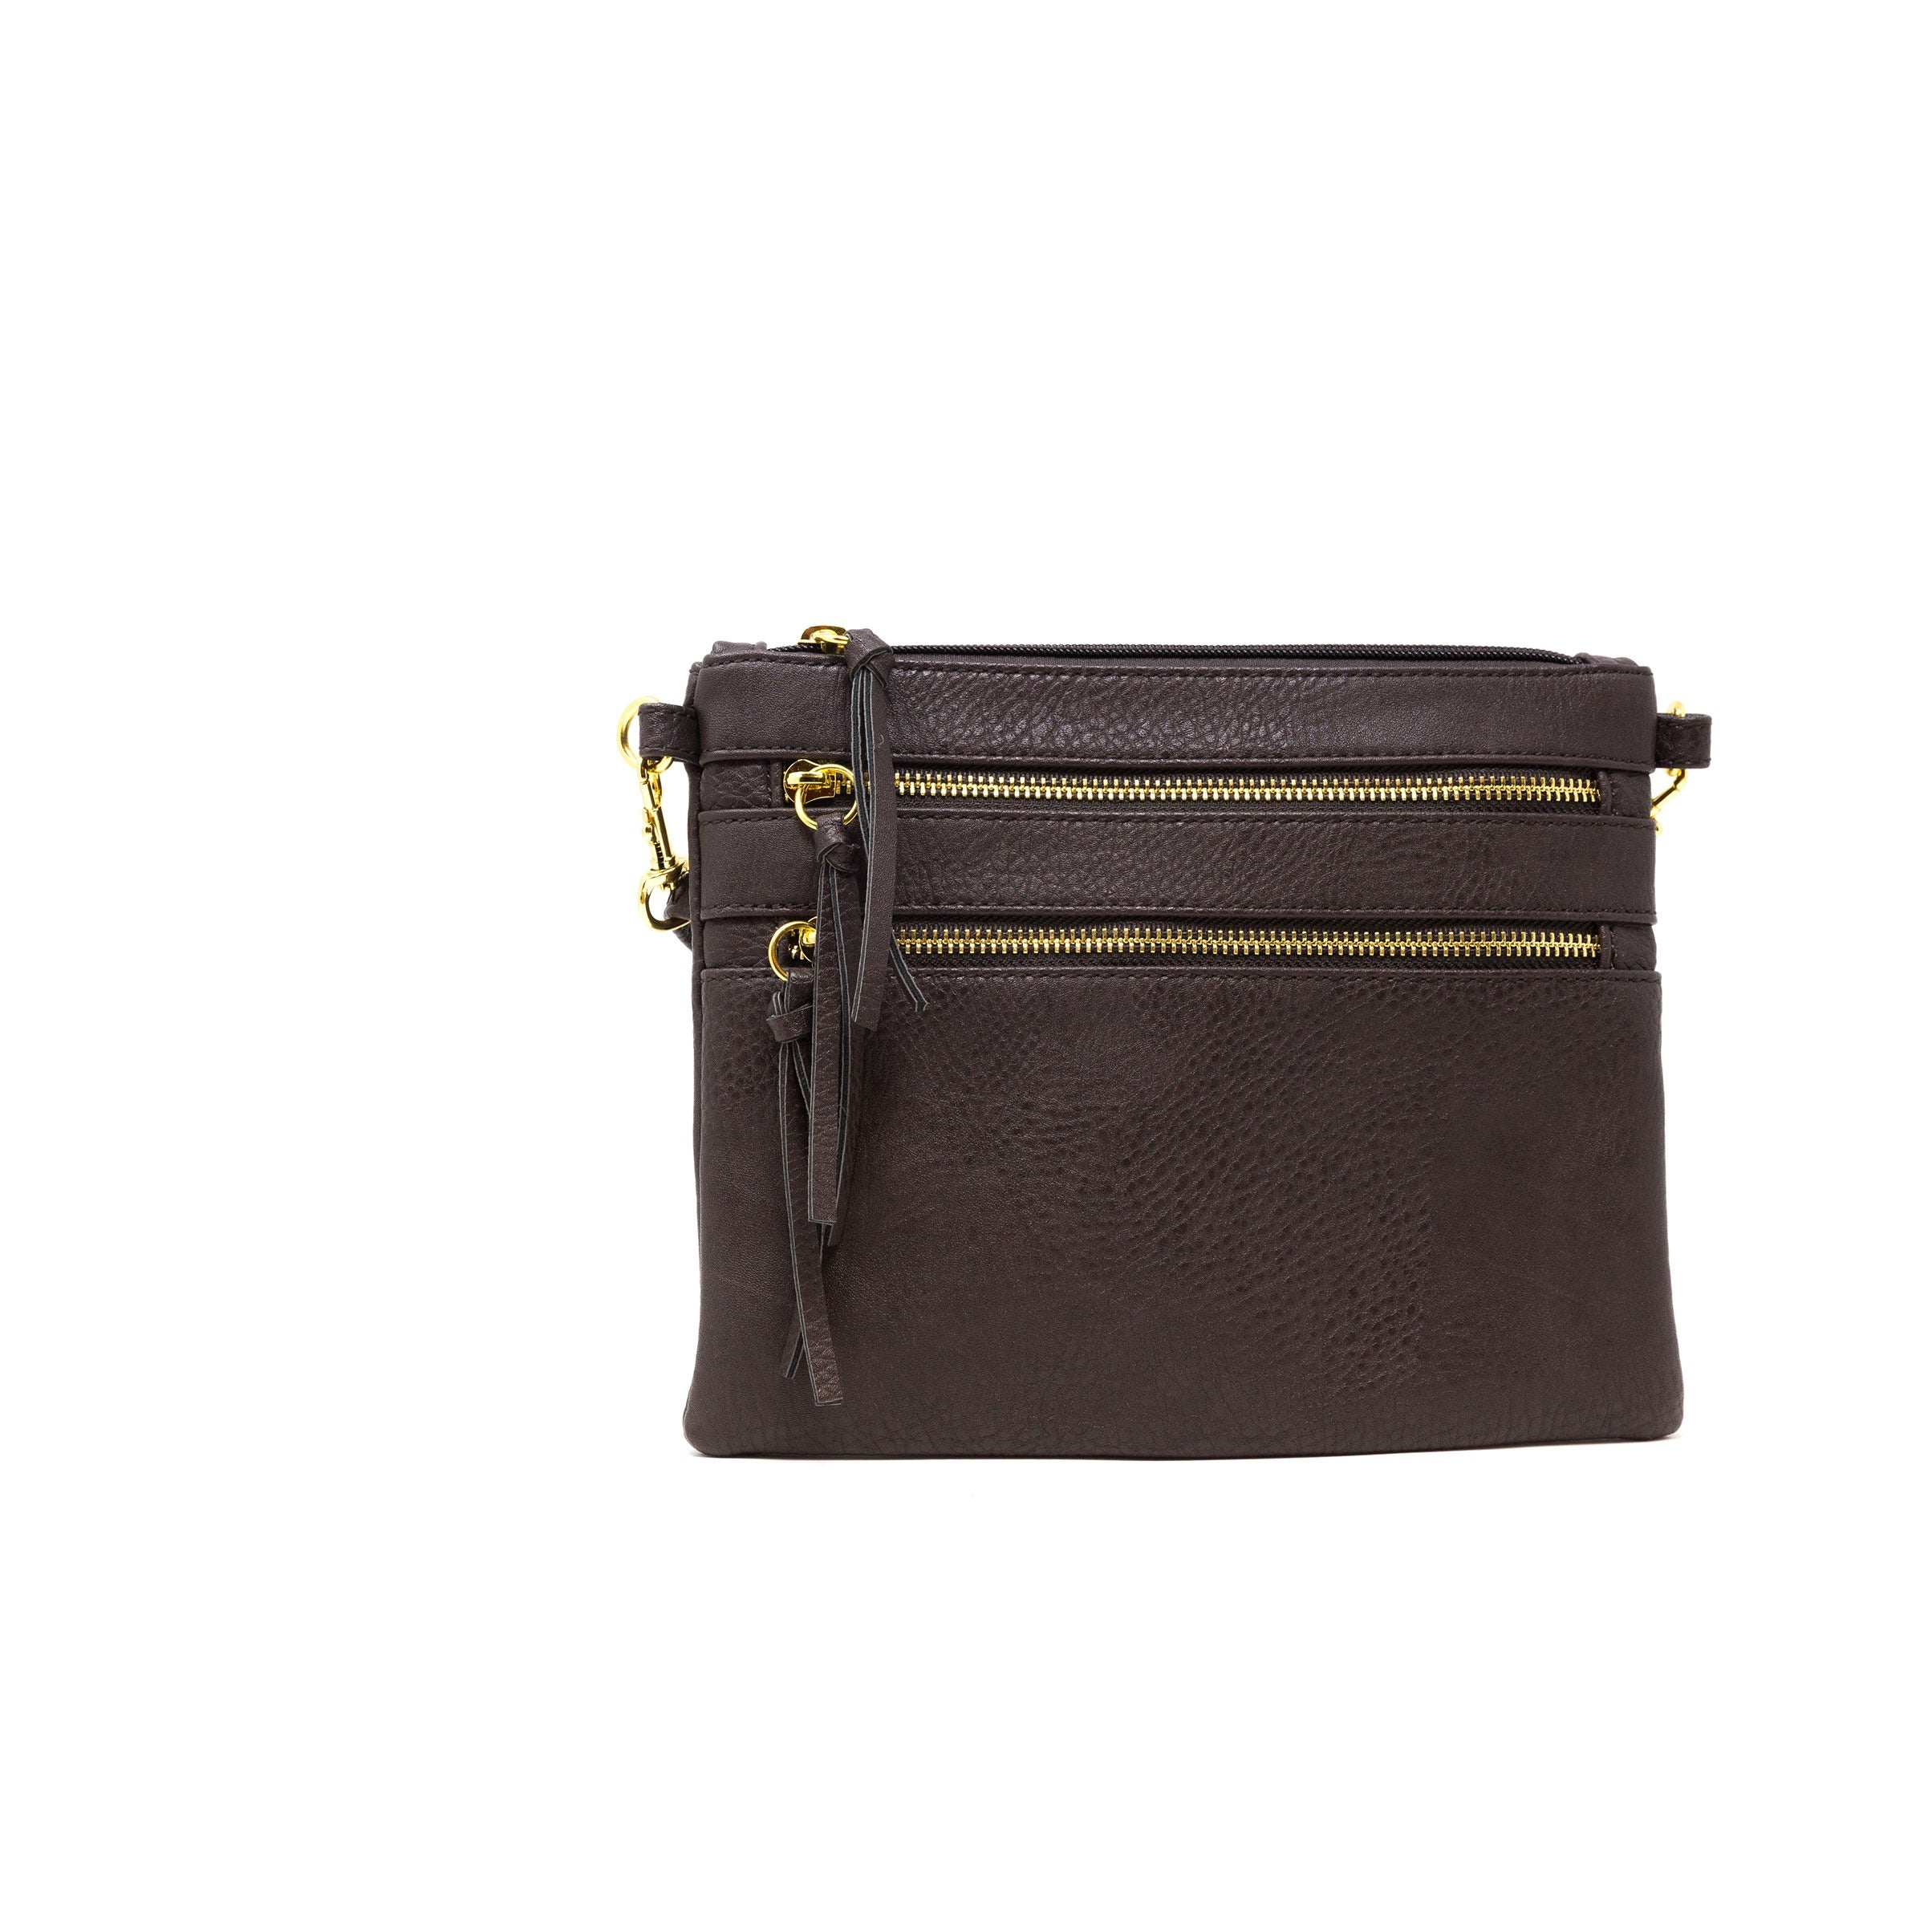 vegan leather brown crossbody bag